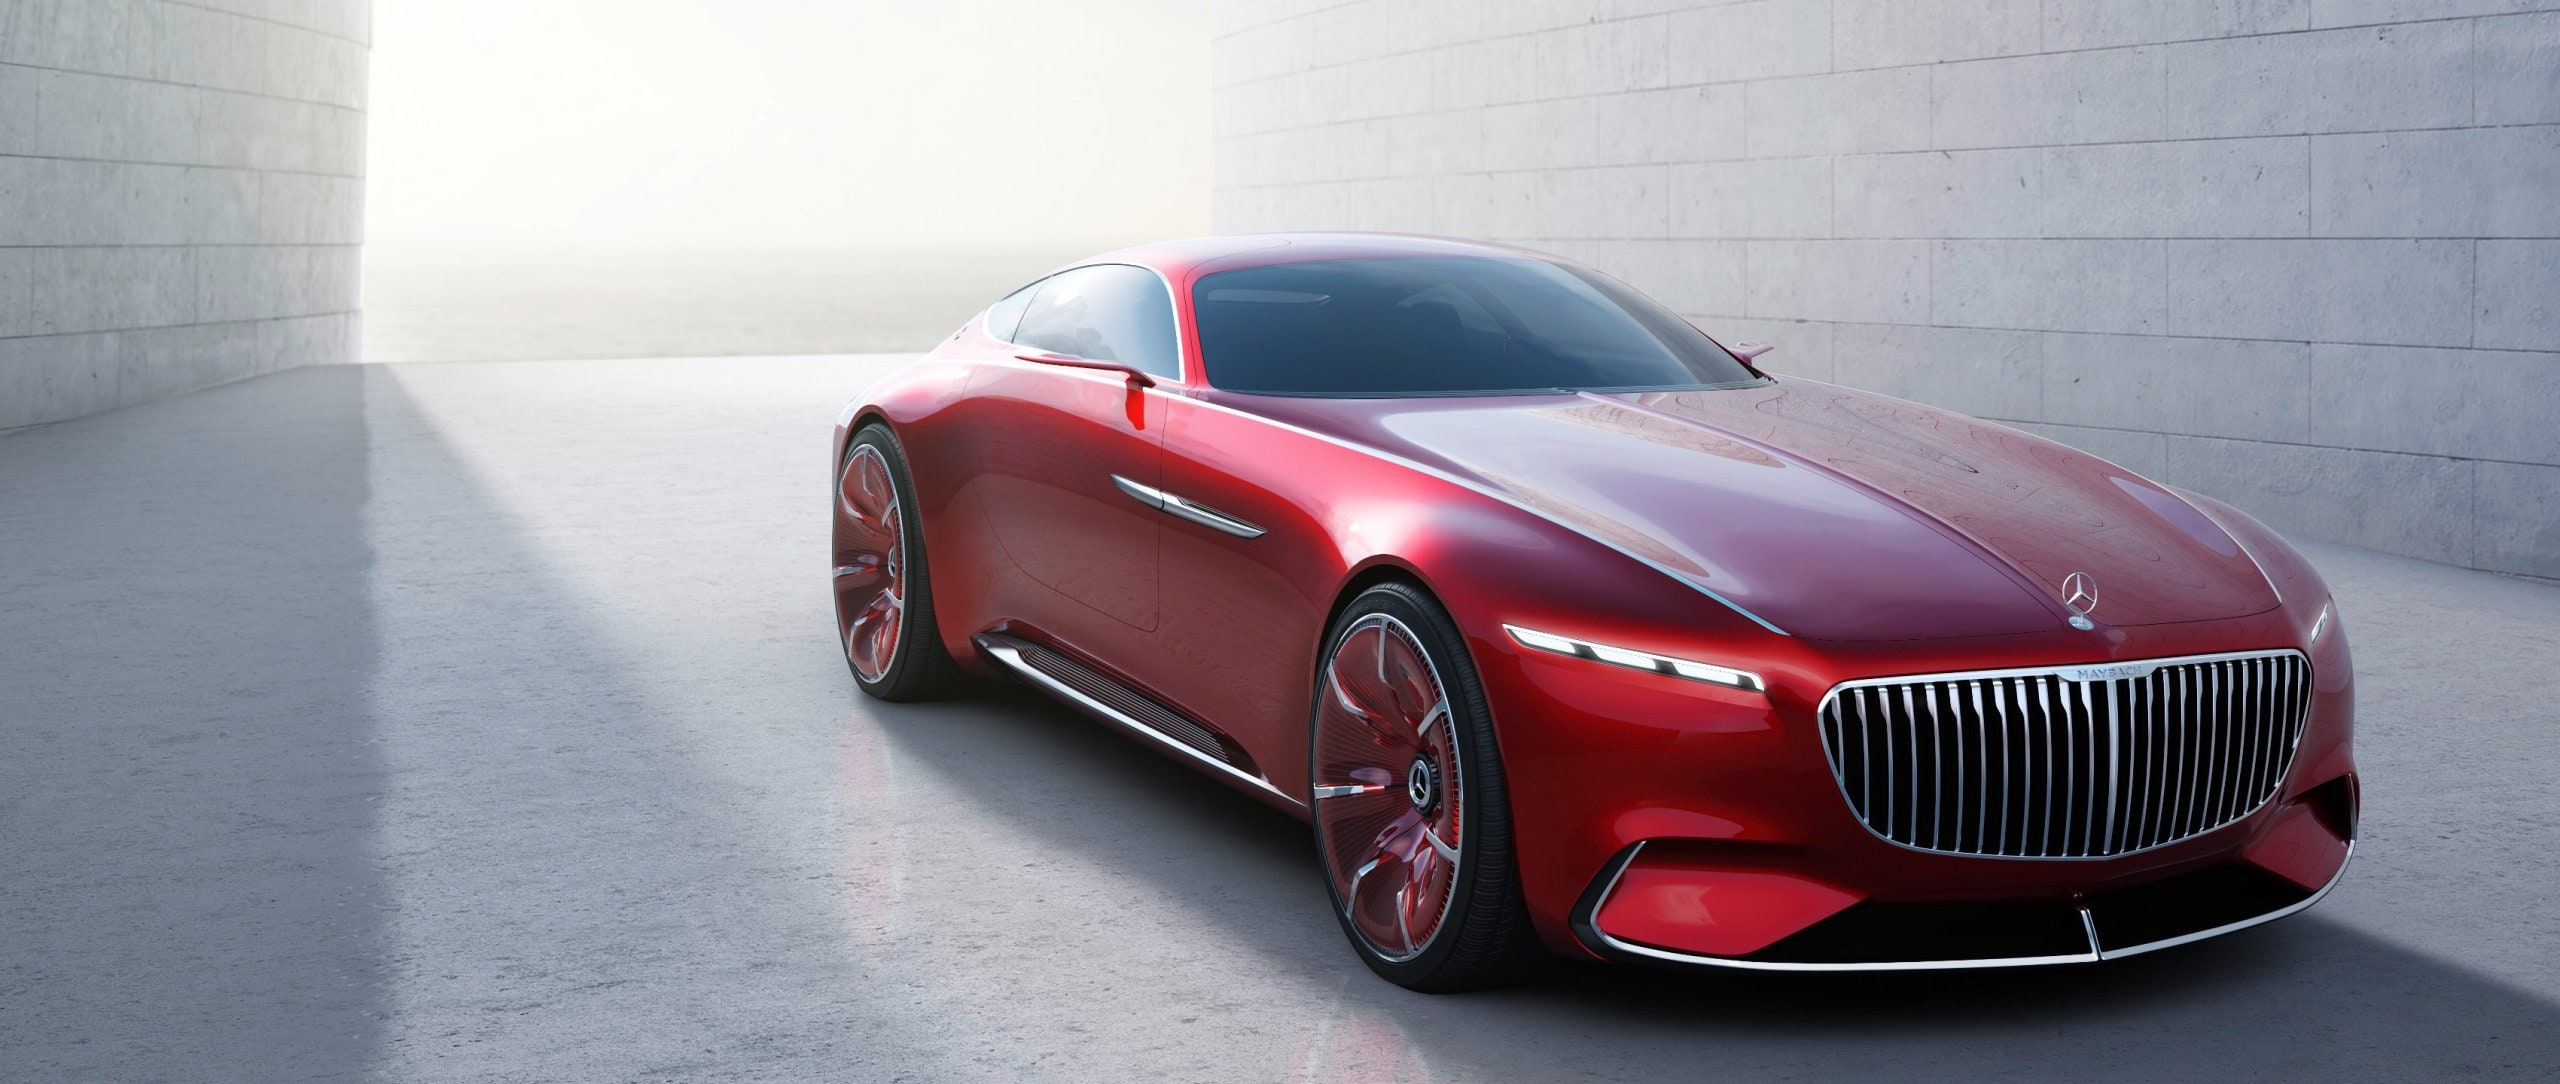 Ultimate luxury: Vision Mercedes-Maybach 6 in half profile.